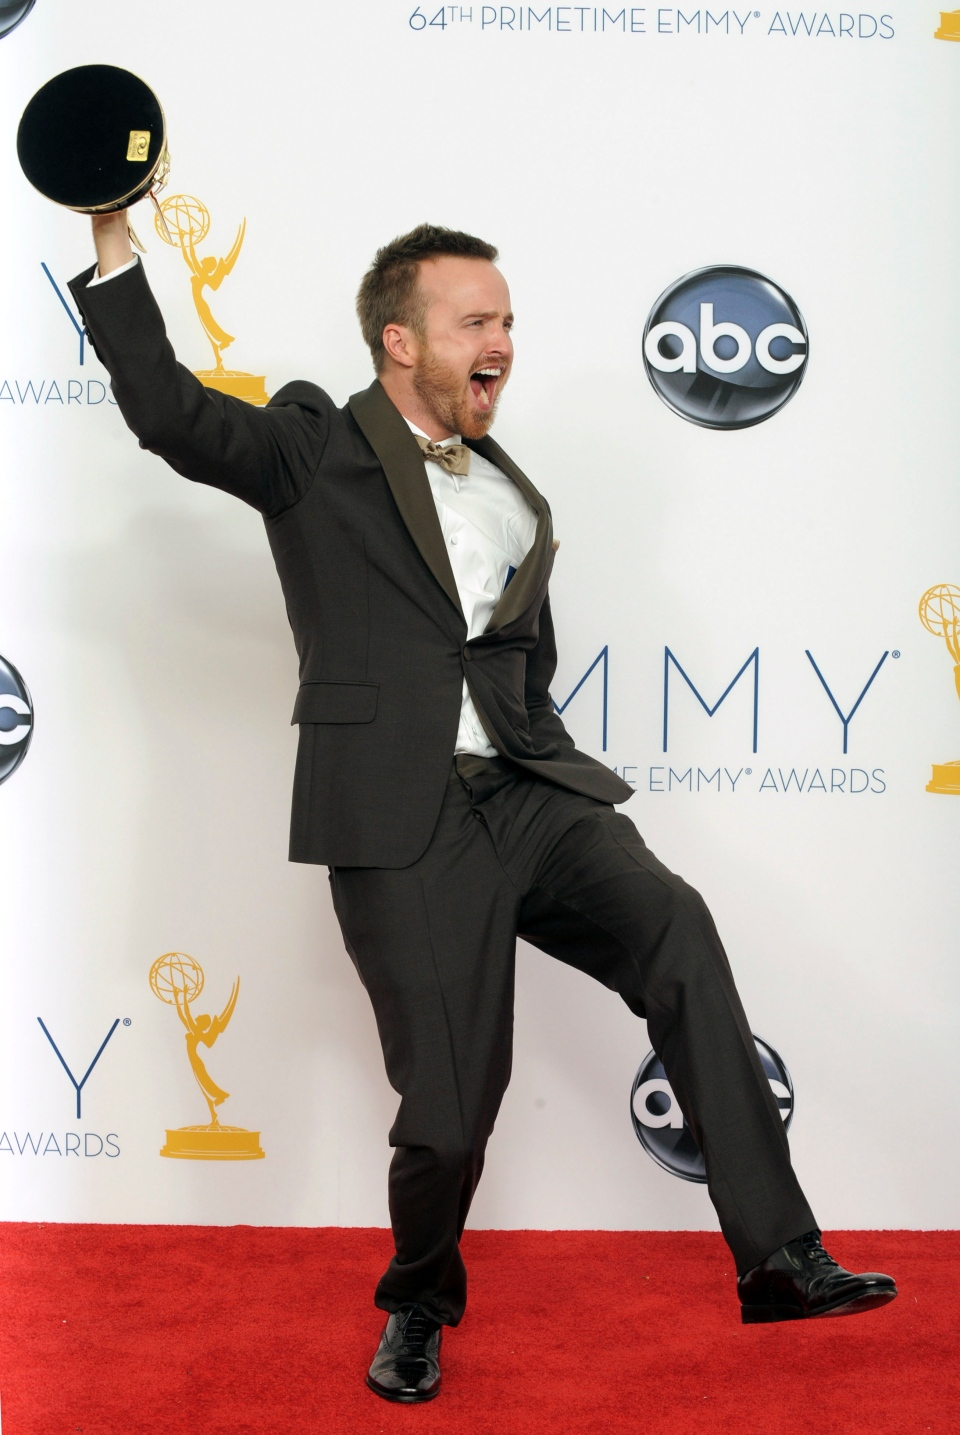 Actor Aaron Paul, winner of Outstanding Supporting Actor In A Drama Series for 'Breaking Bad,' poses backstage at the 64th Primetime Emmy Awards at the Nokia Theatre on Sunday, Sept. 23, 2012, in Los Angeles. (Jordan Strauss / Invision)